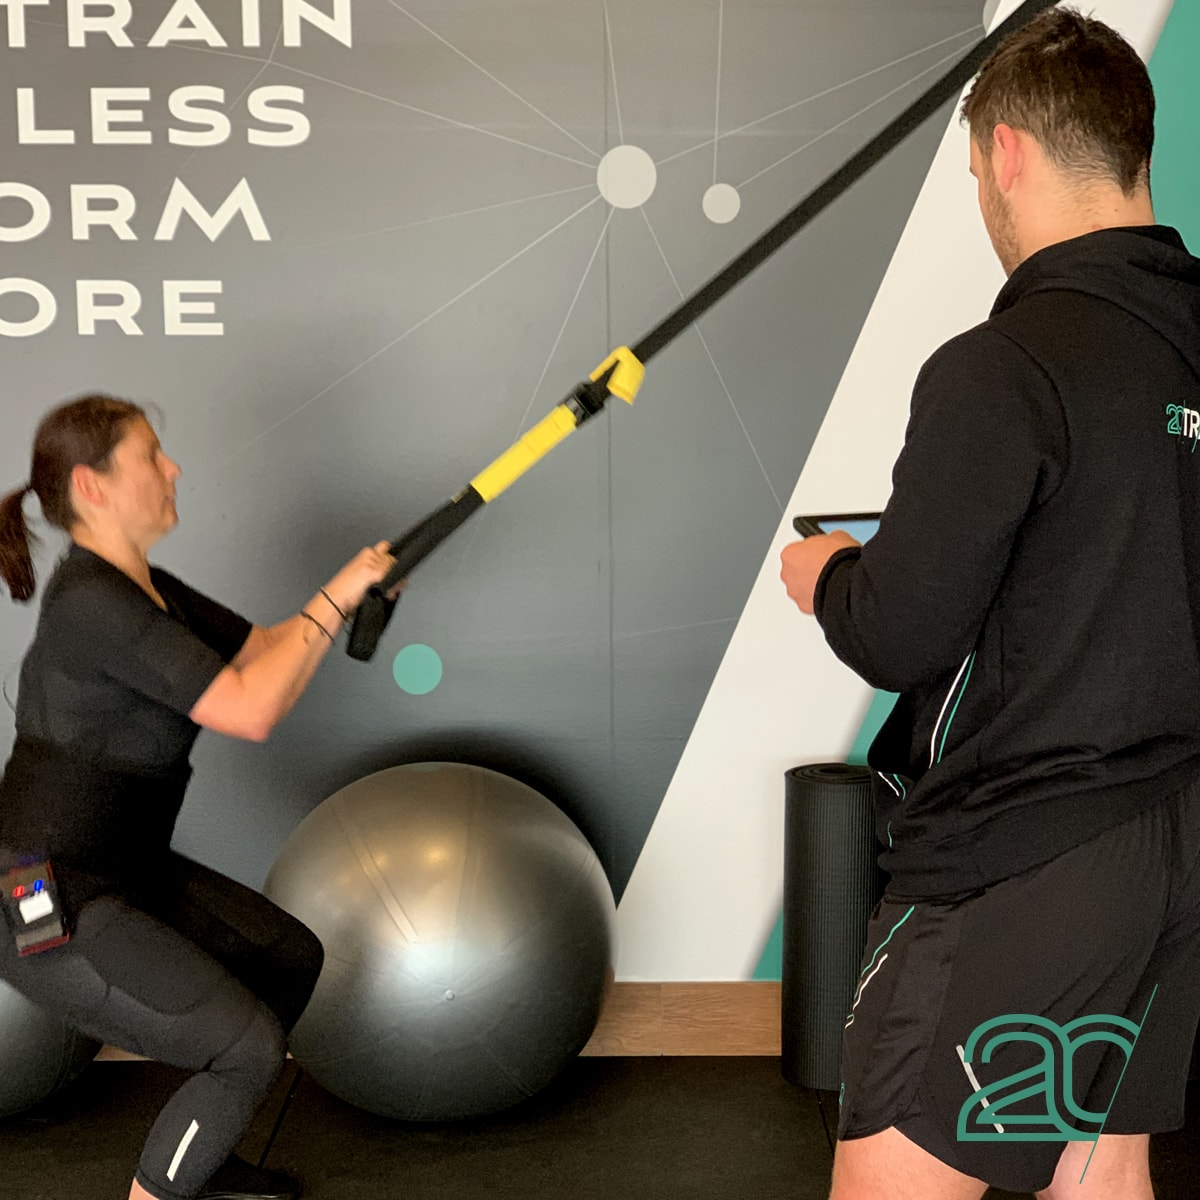 Woman Doing Squats Using EMS with the Help of a 20PerFit Personal Trainer